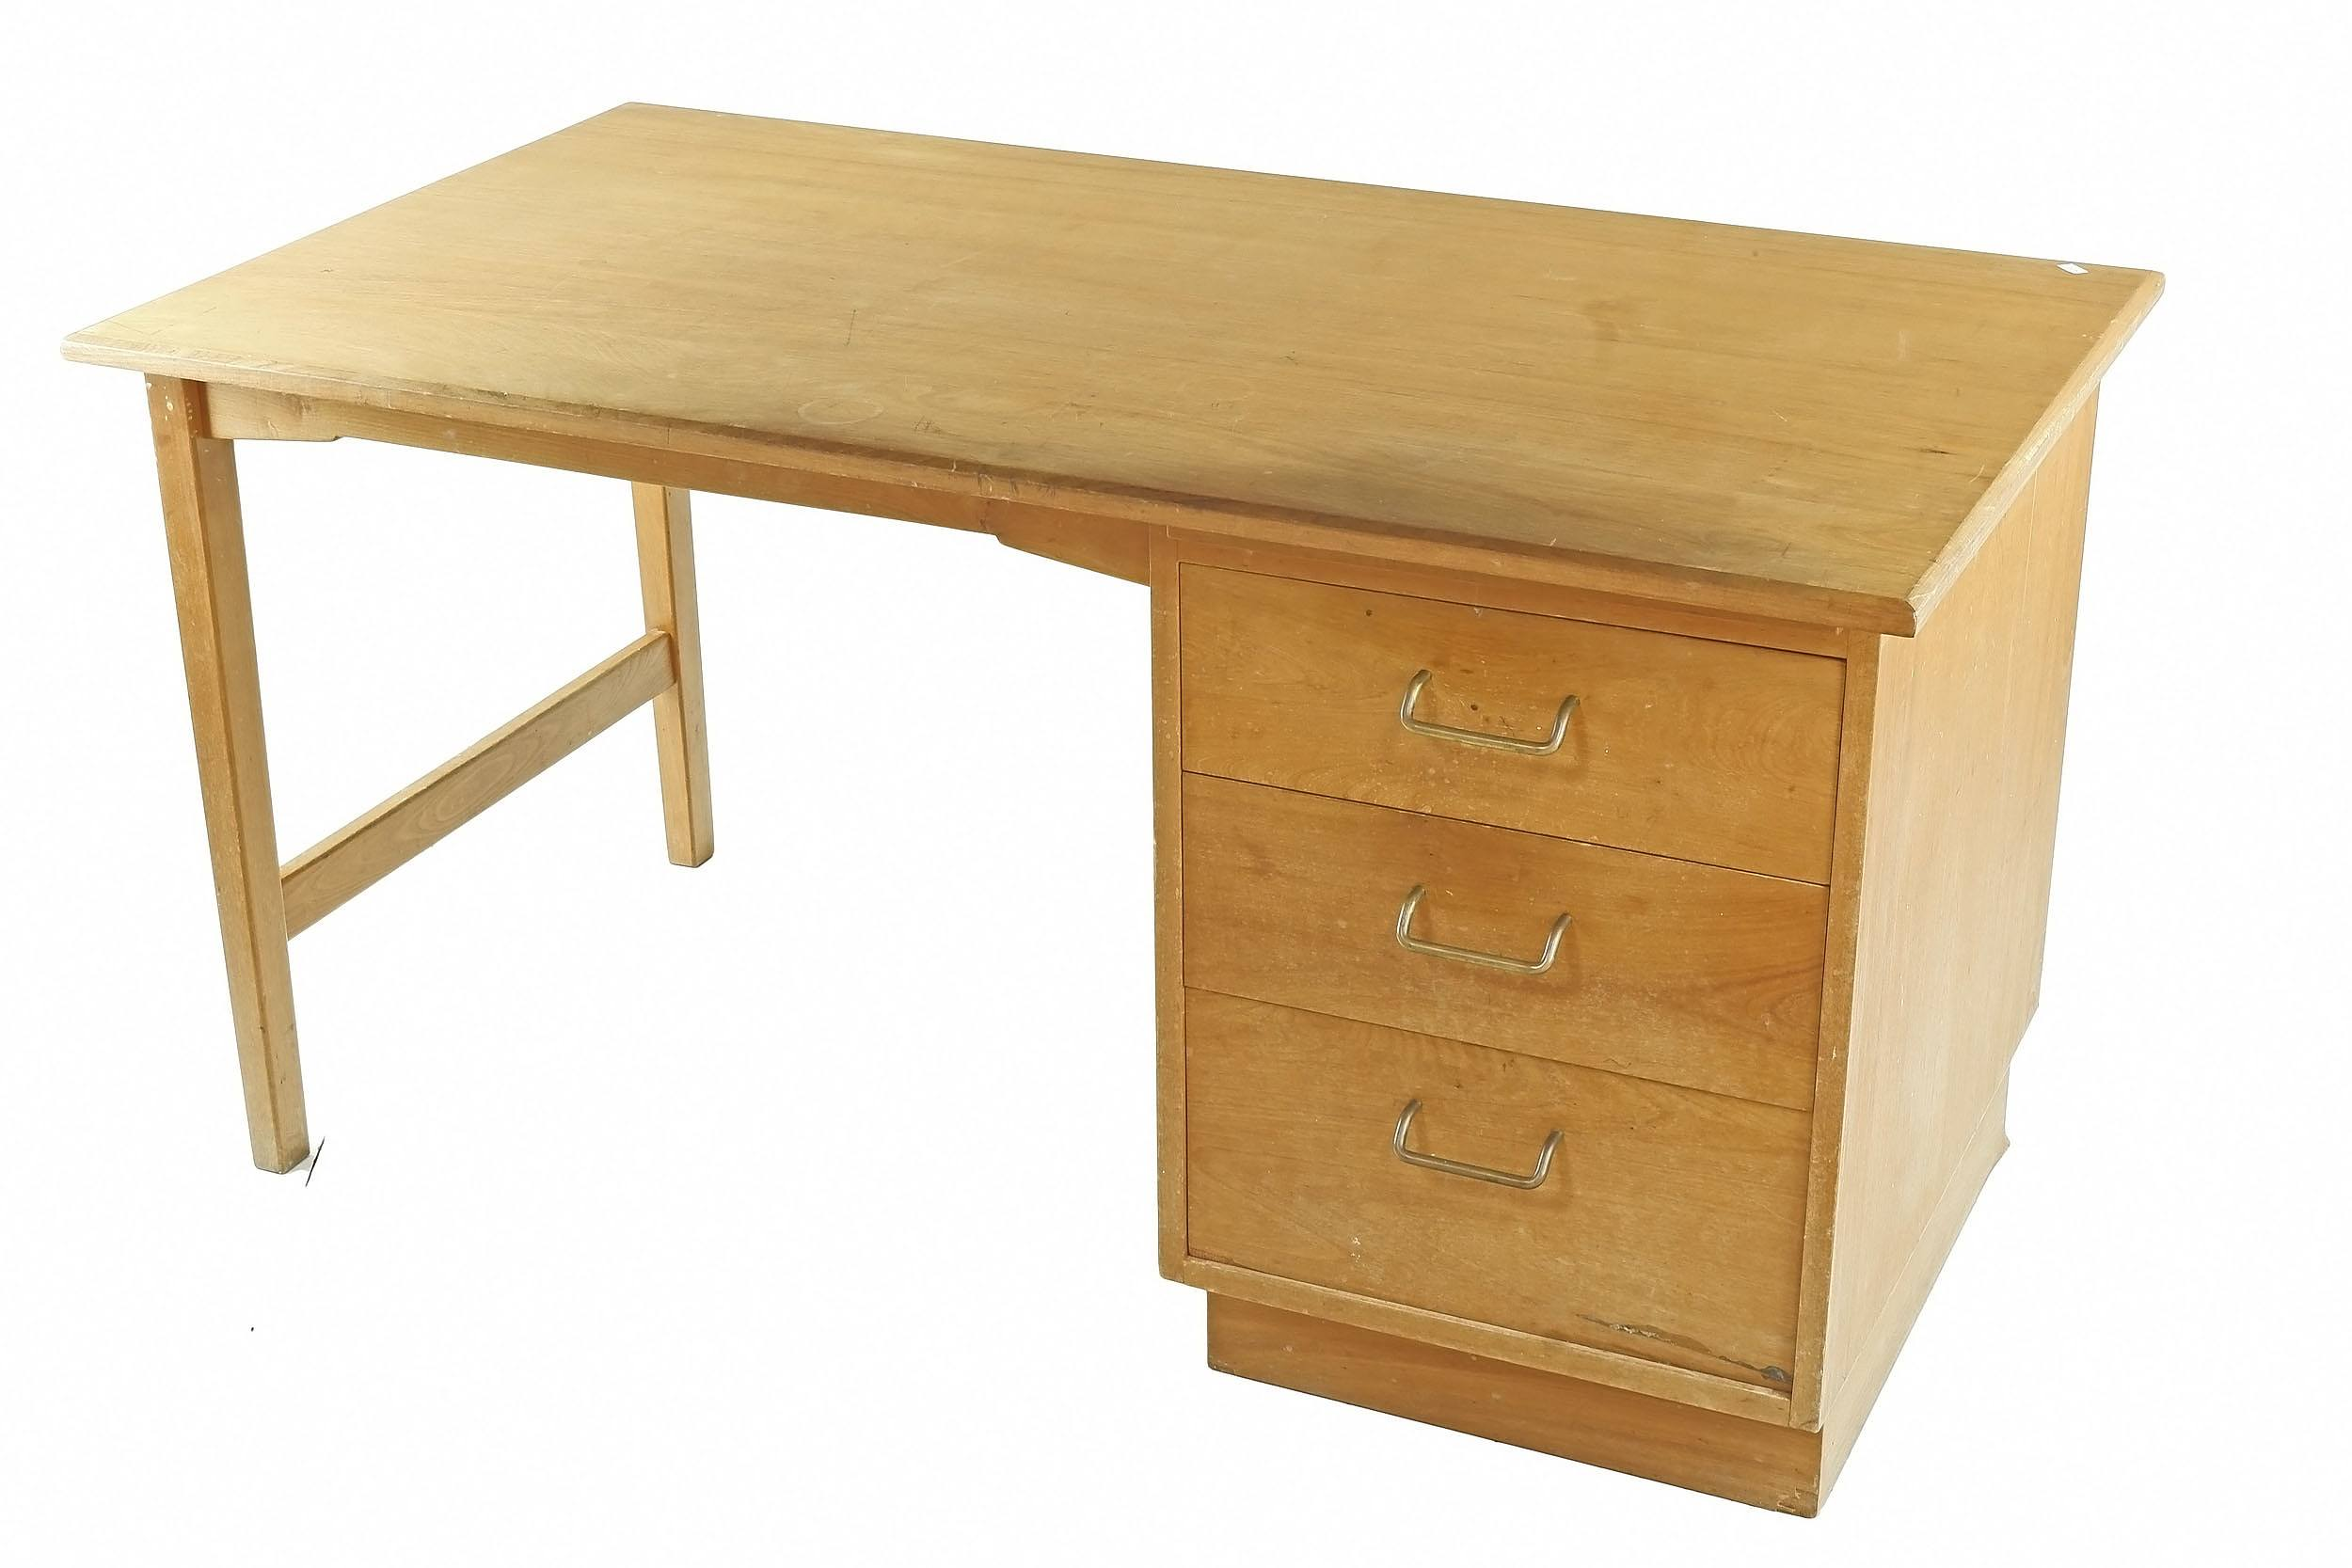 'Fred Ward ANU Victorian Ash Students Desk'